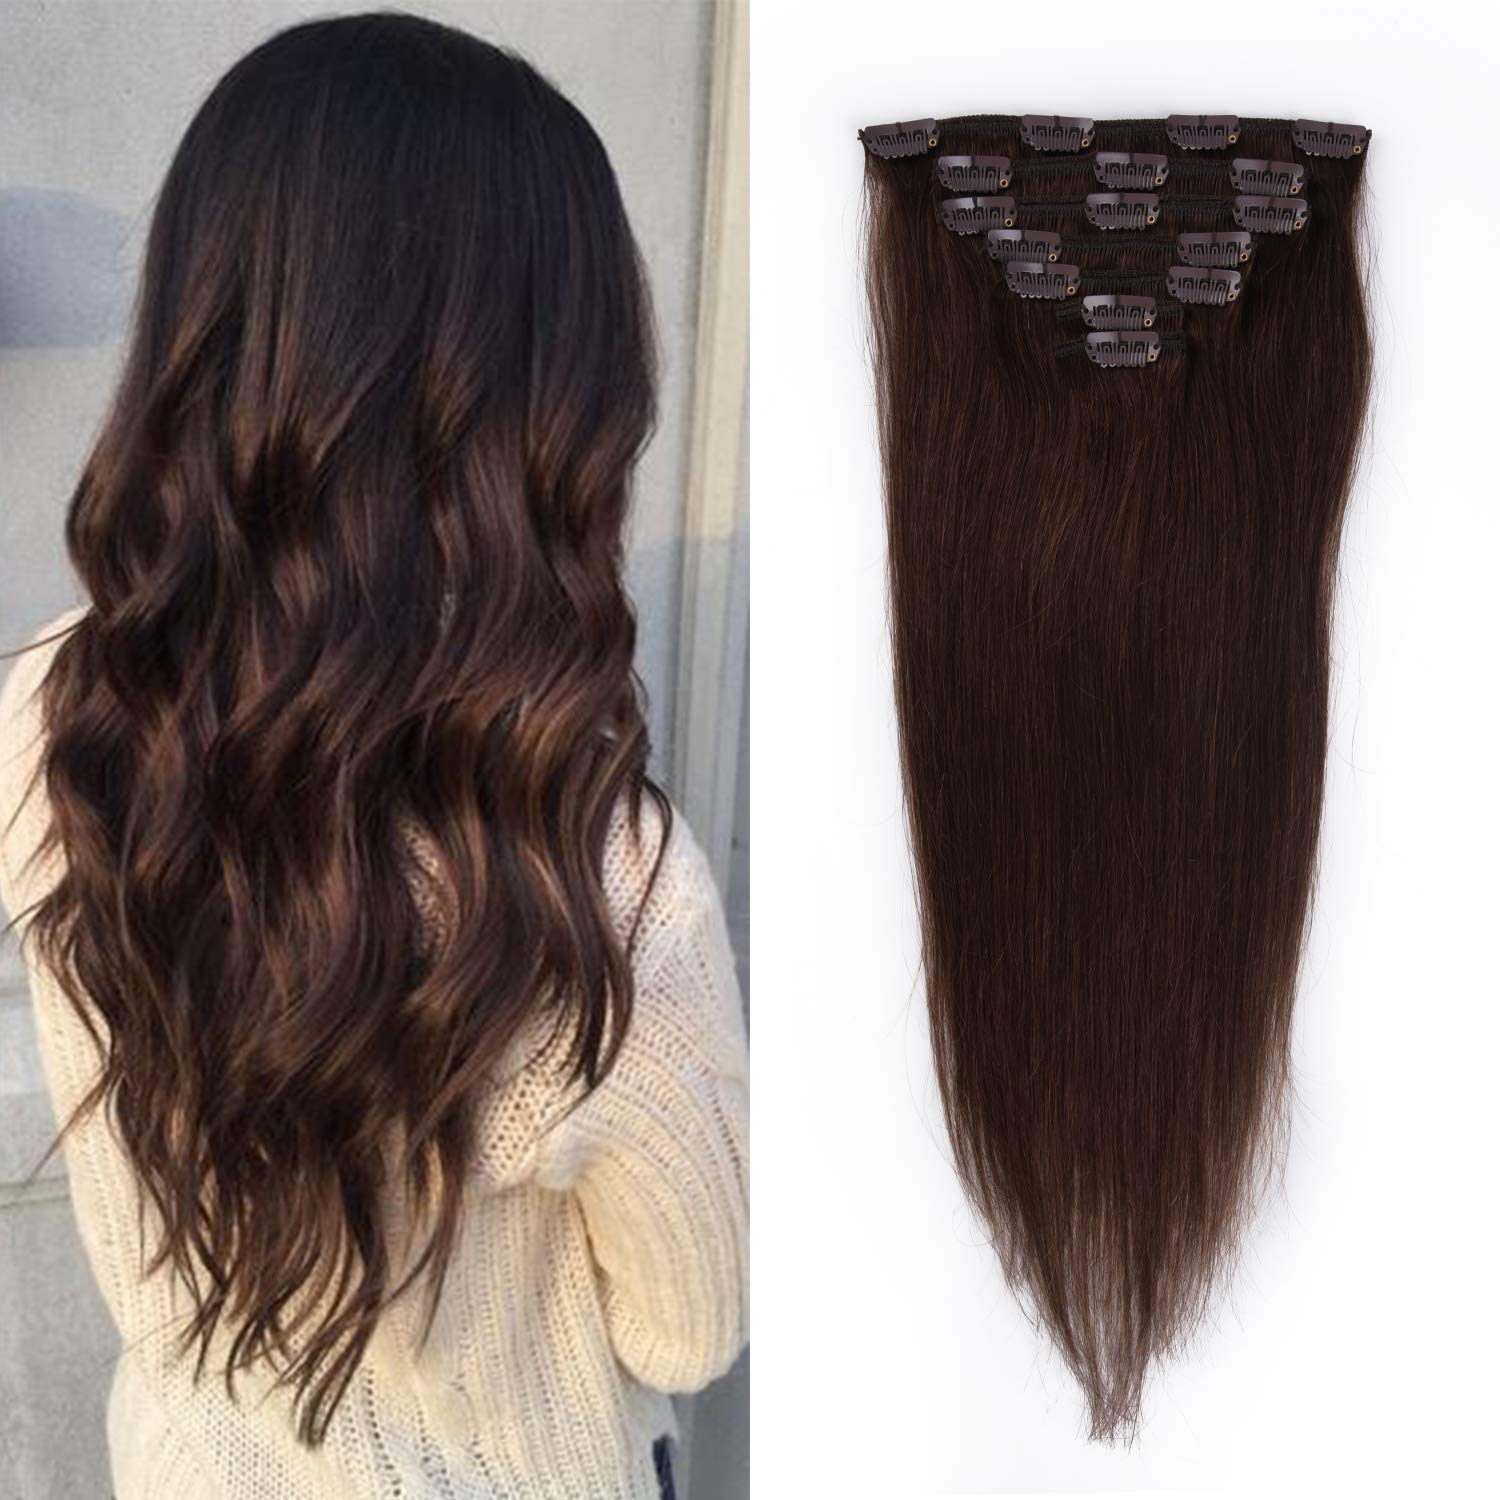 Amazon 14 Inches Clip In Hair Extensions Remy Human Hair 70g